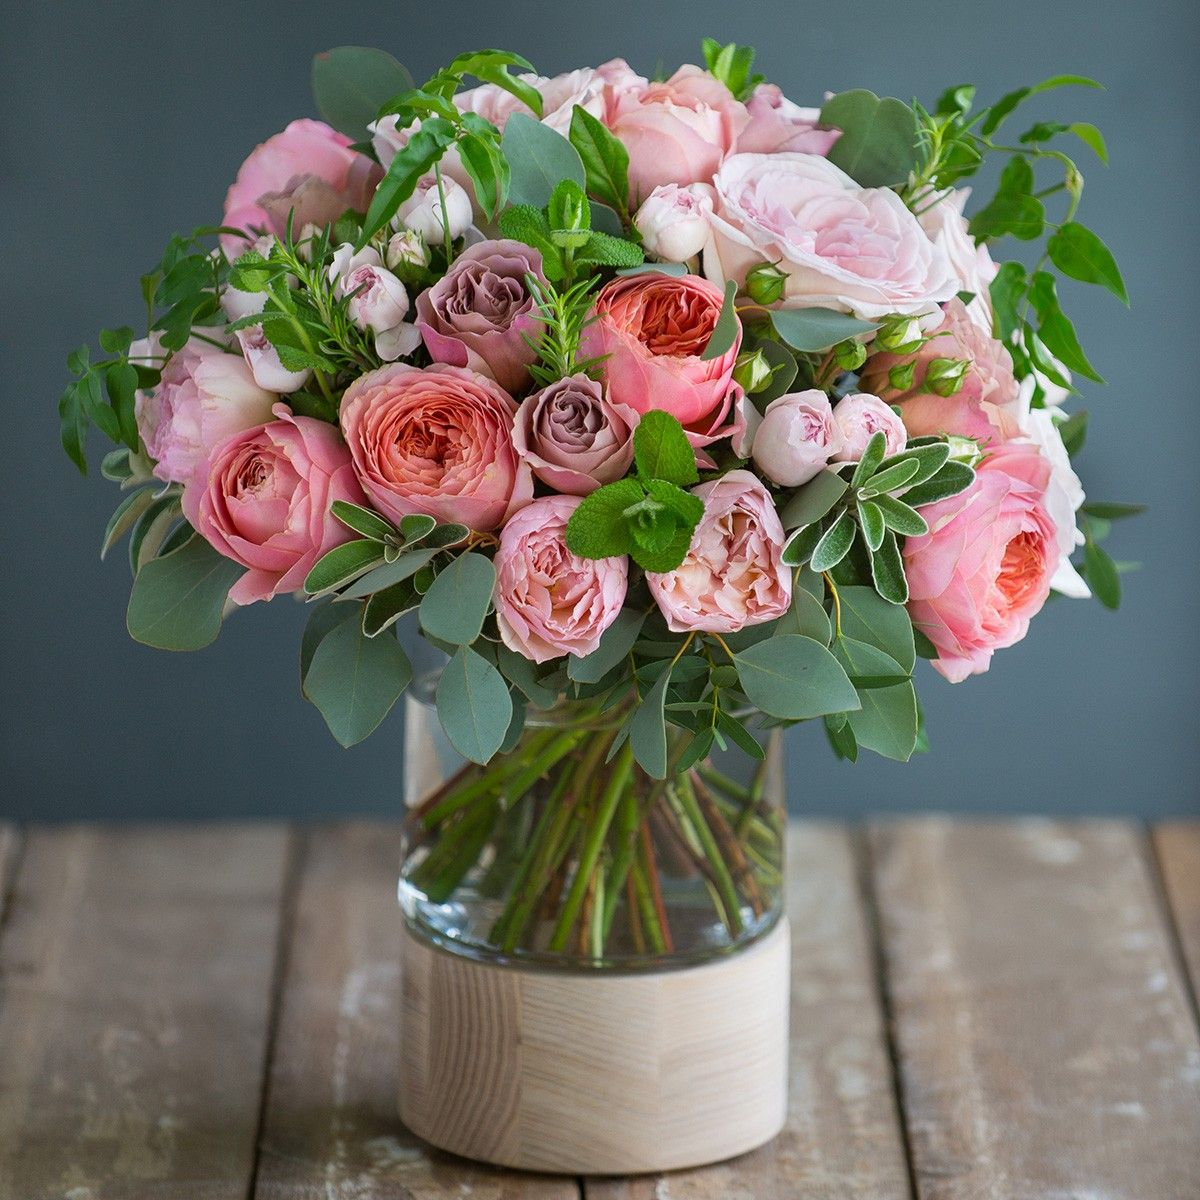 Pink blowsy and beautiful this highly scented luxury bouquet is a flower izmirmasajfo Choice Image